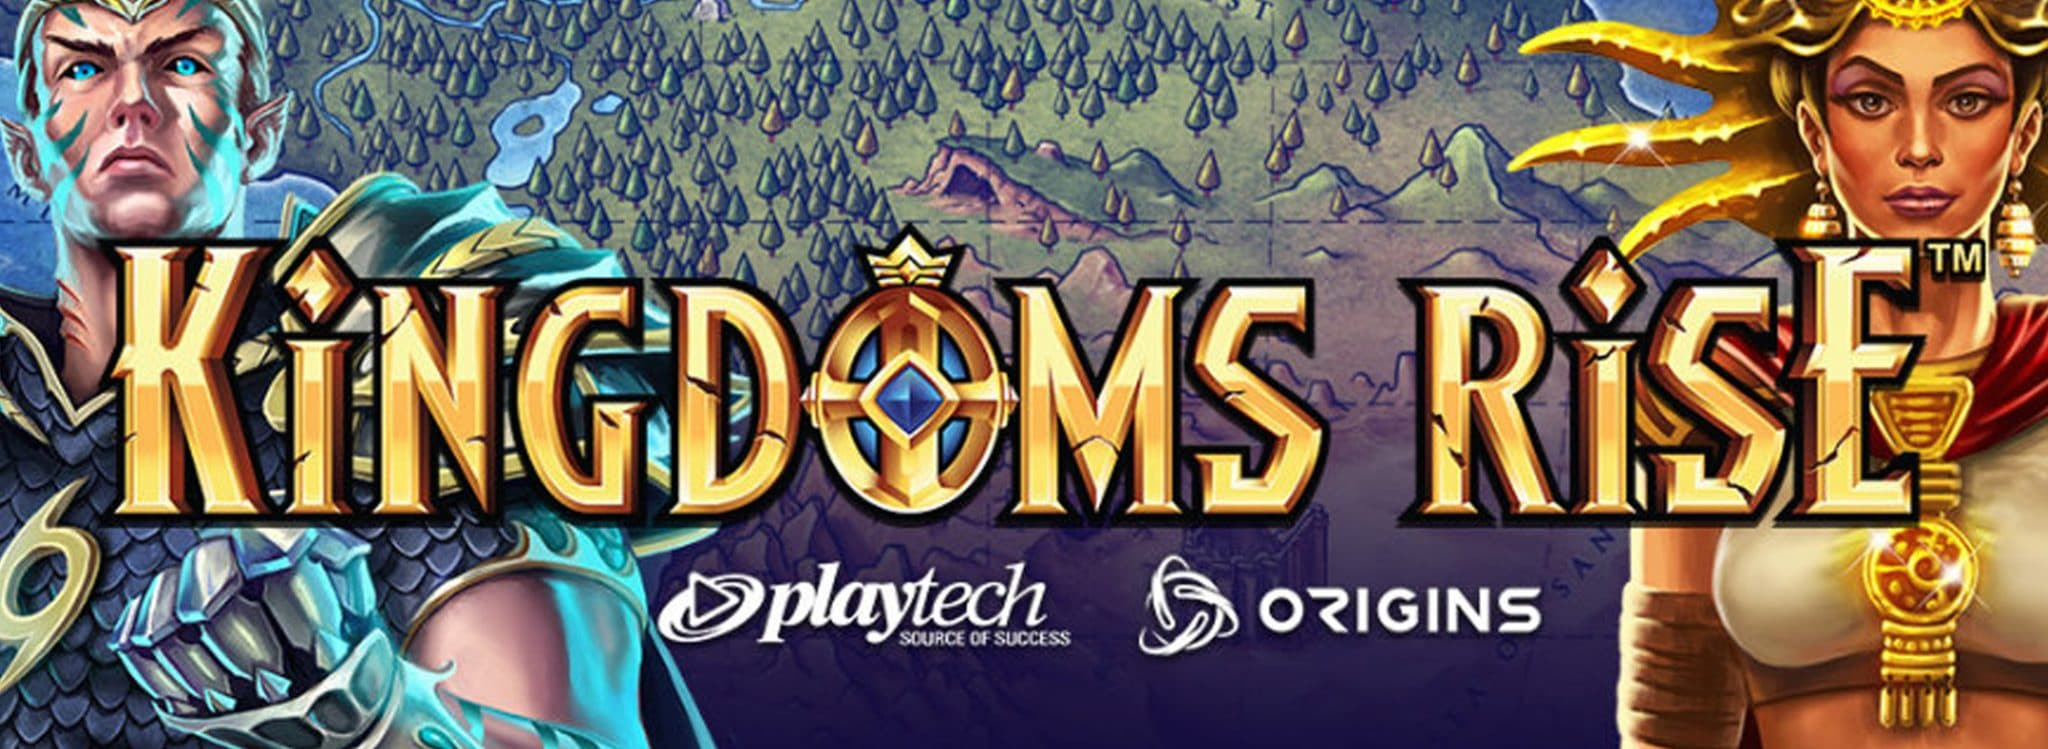 BGO Is Offering A Million Free Spins on Kingdoms Rise! element01 - CasinoTop